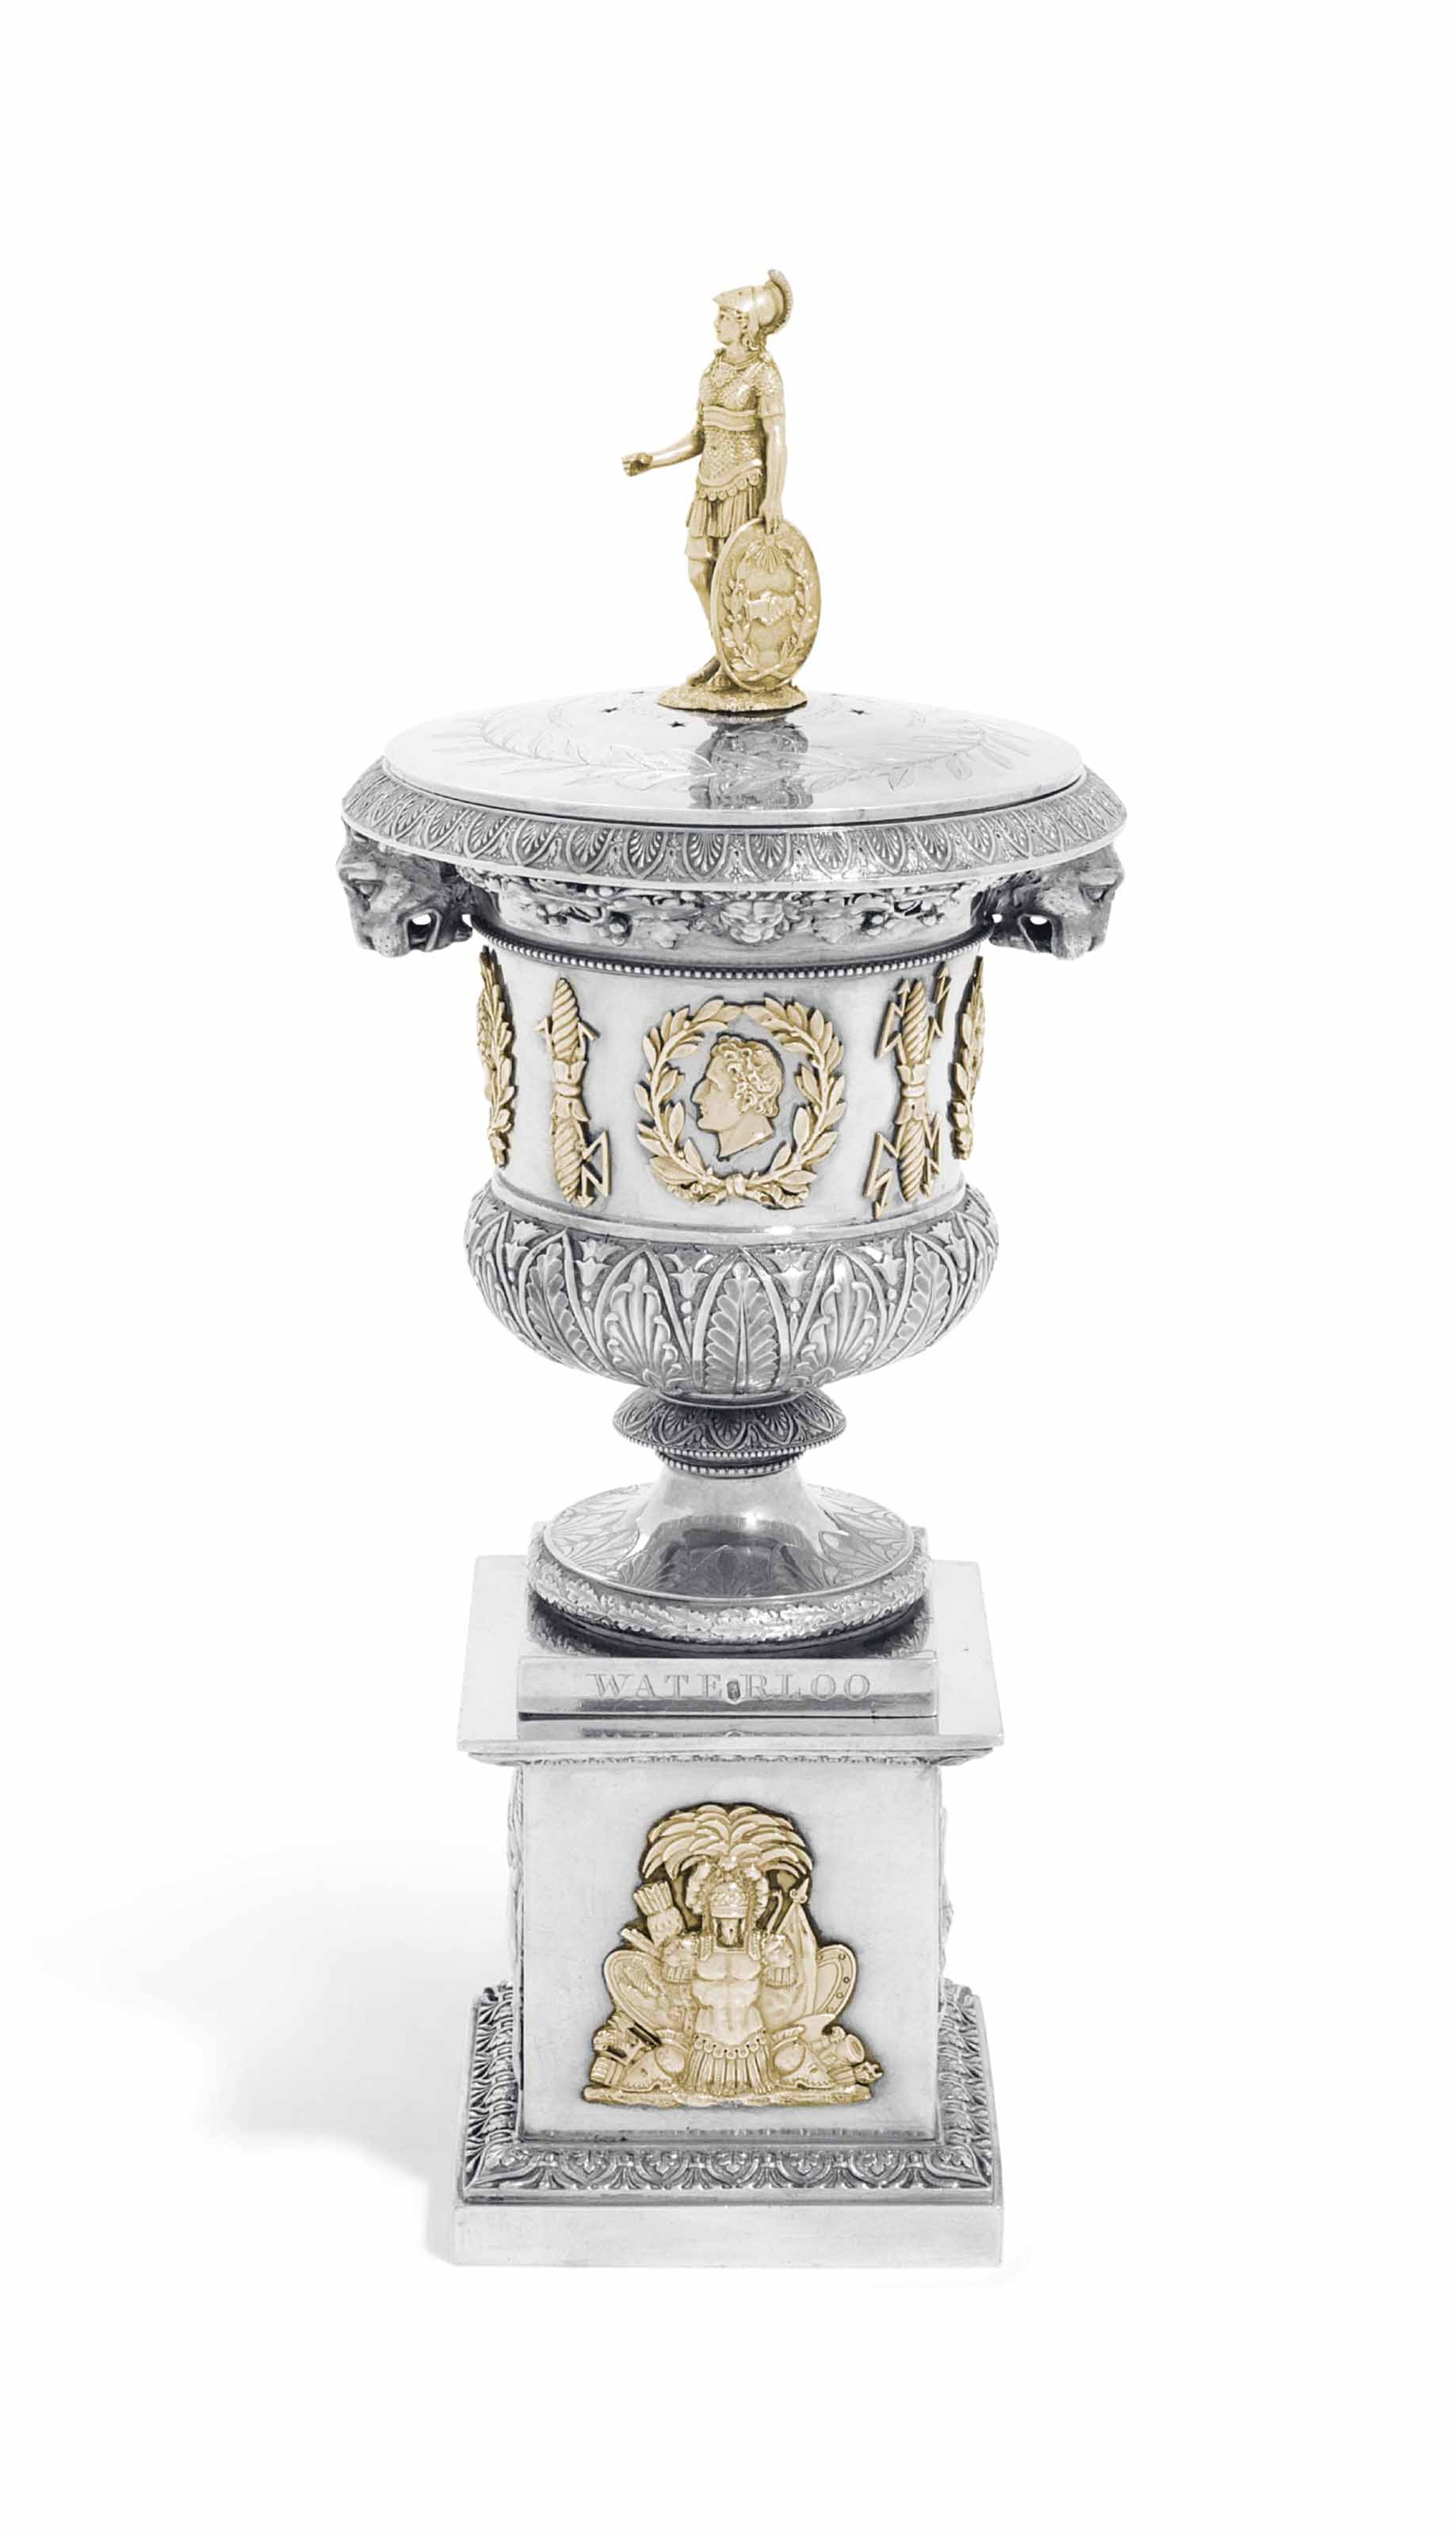 A SWISS PARCEL-GILT SILVER PERFUME-VASE AND STAND